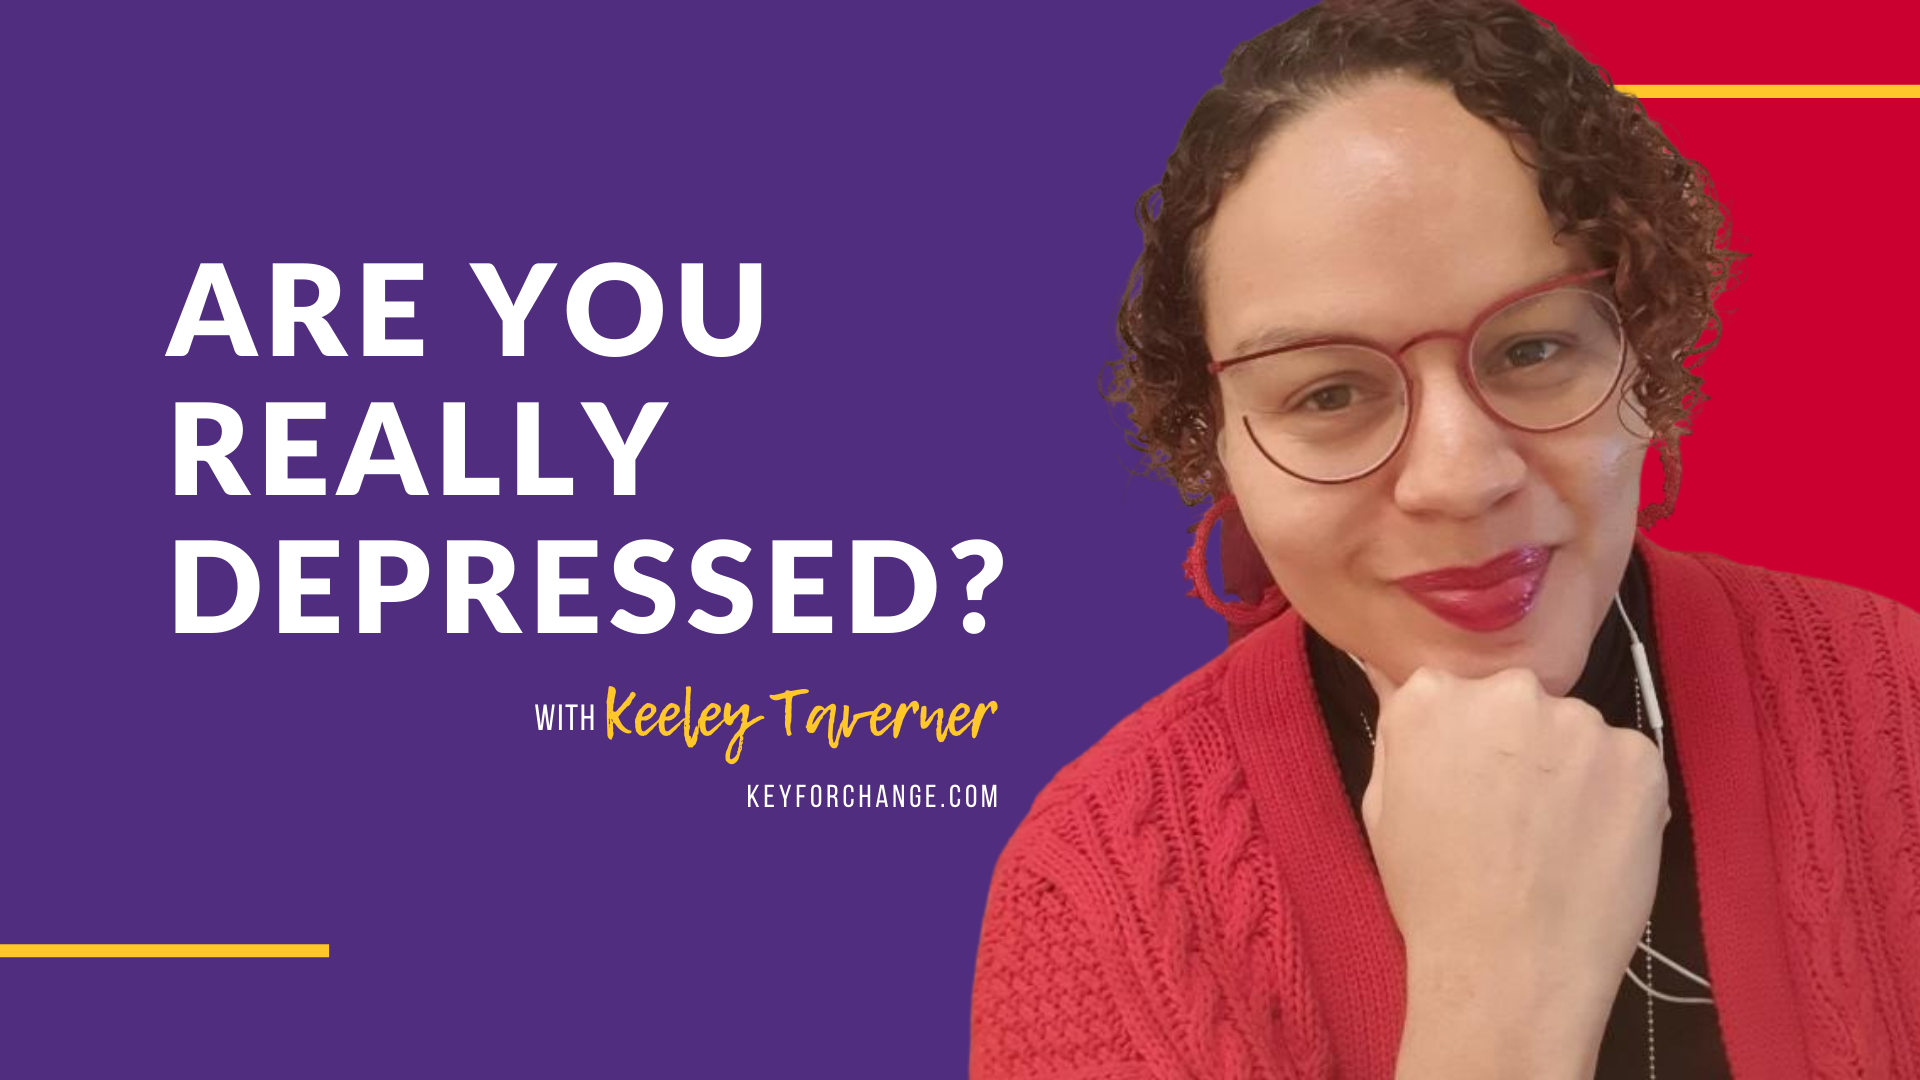 Are you really depressed?